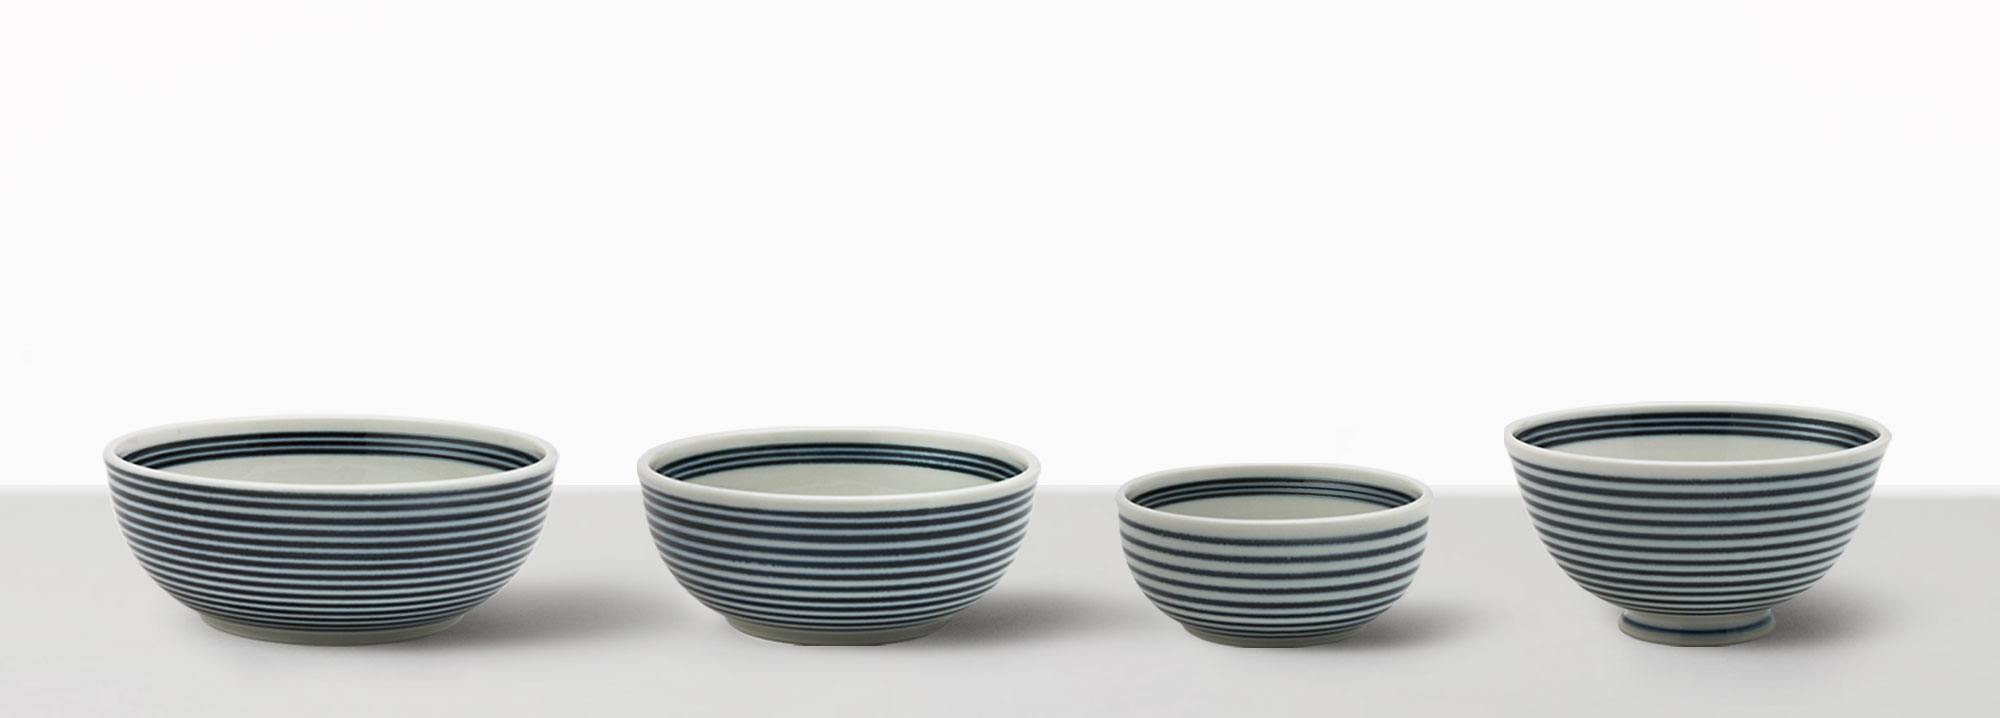 Beautiful Blue And White Is The New Neutral. Your Everyday Dishes Are Here! Made In  Japan.